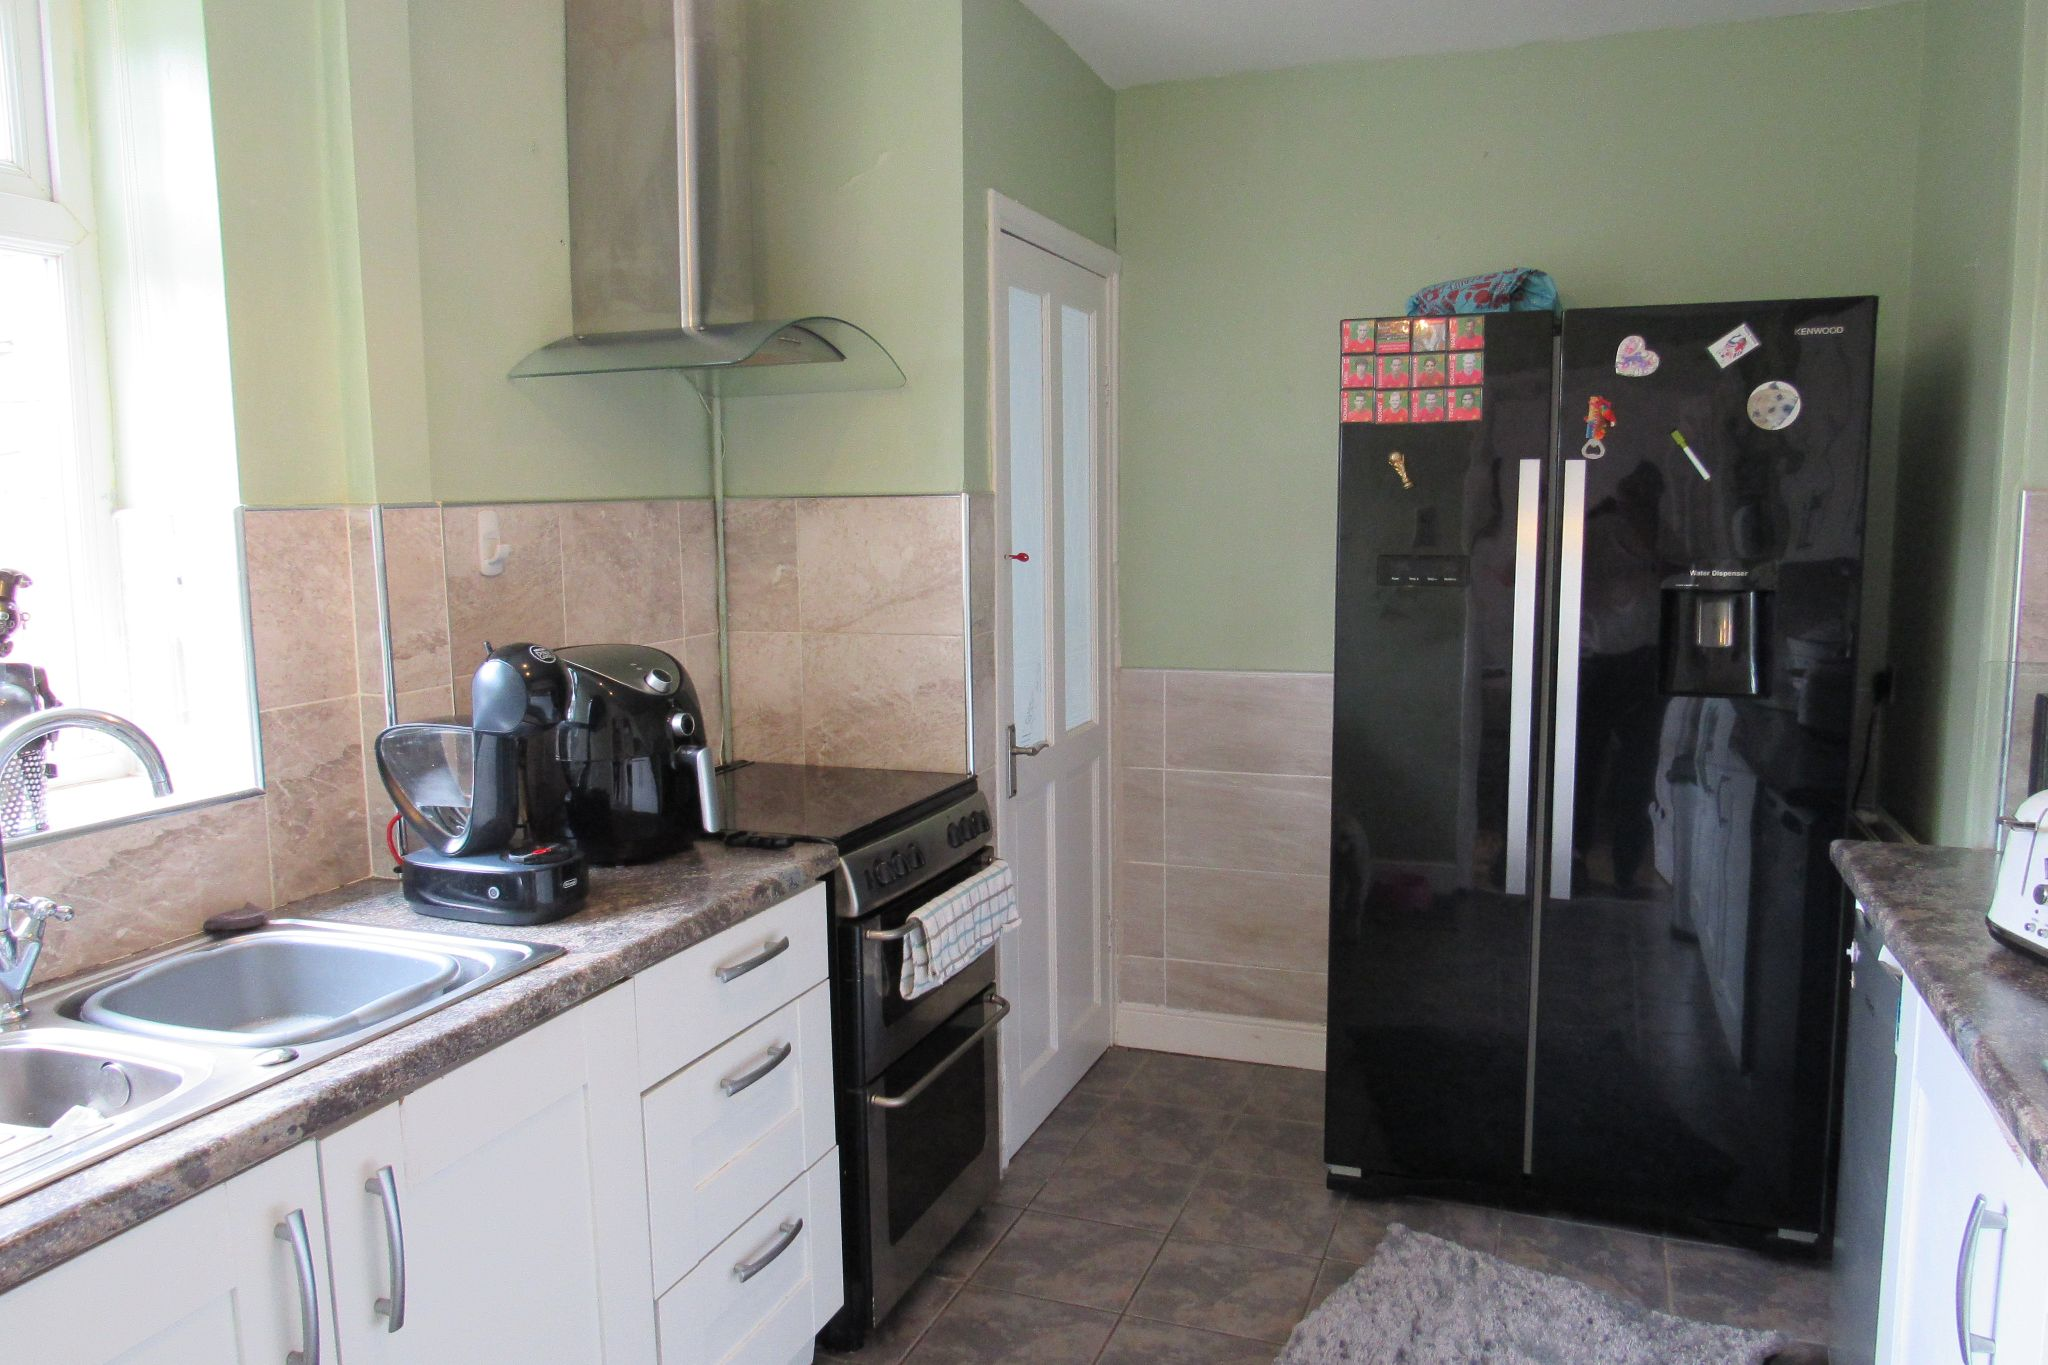 3 bedroom mid terraced house SSTC in Manchester - Photograph 6.